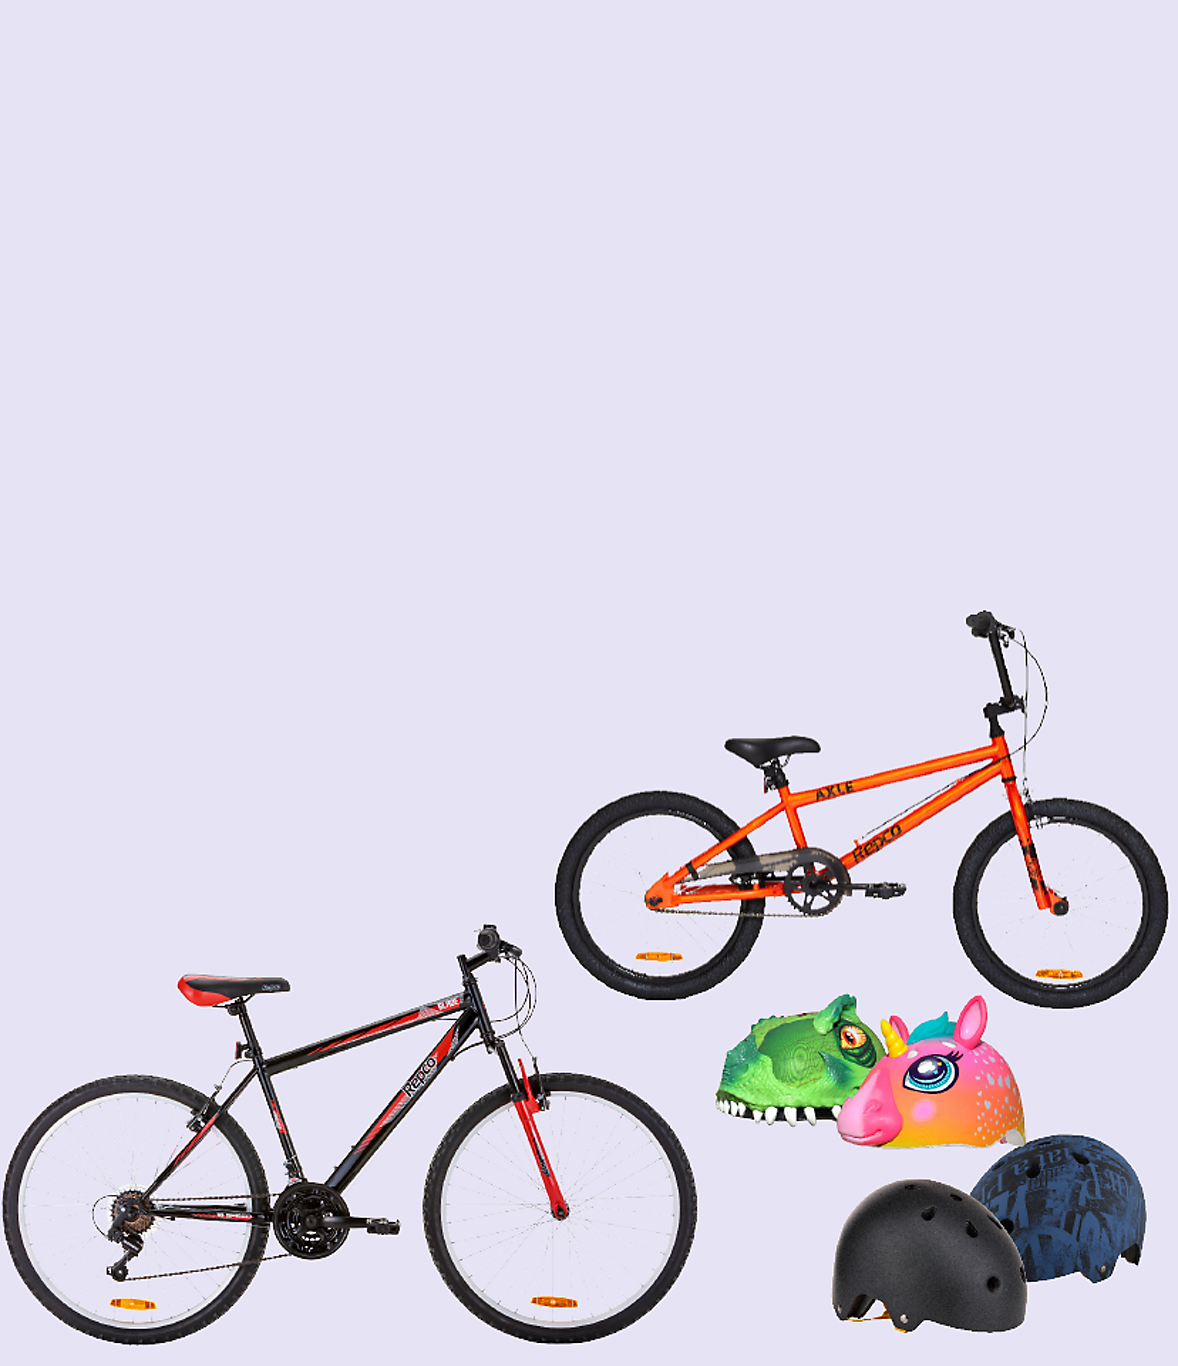 Bikes and helmets for the whole family